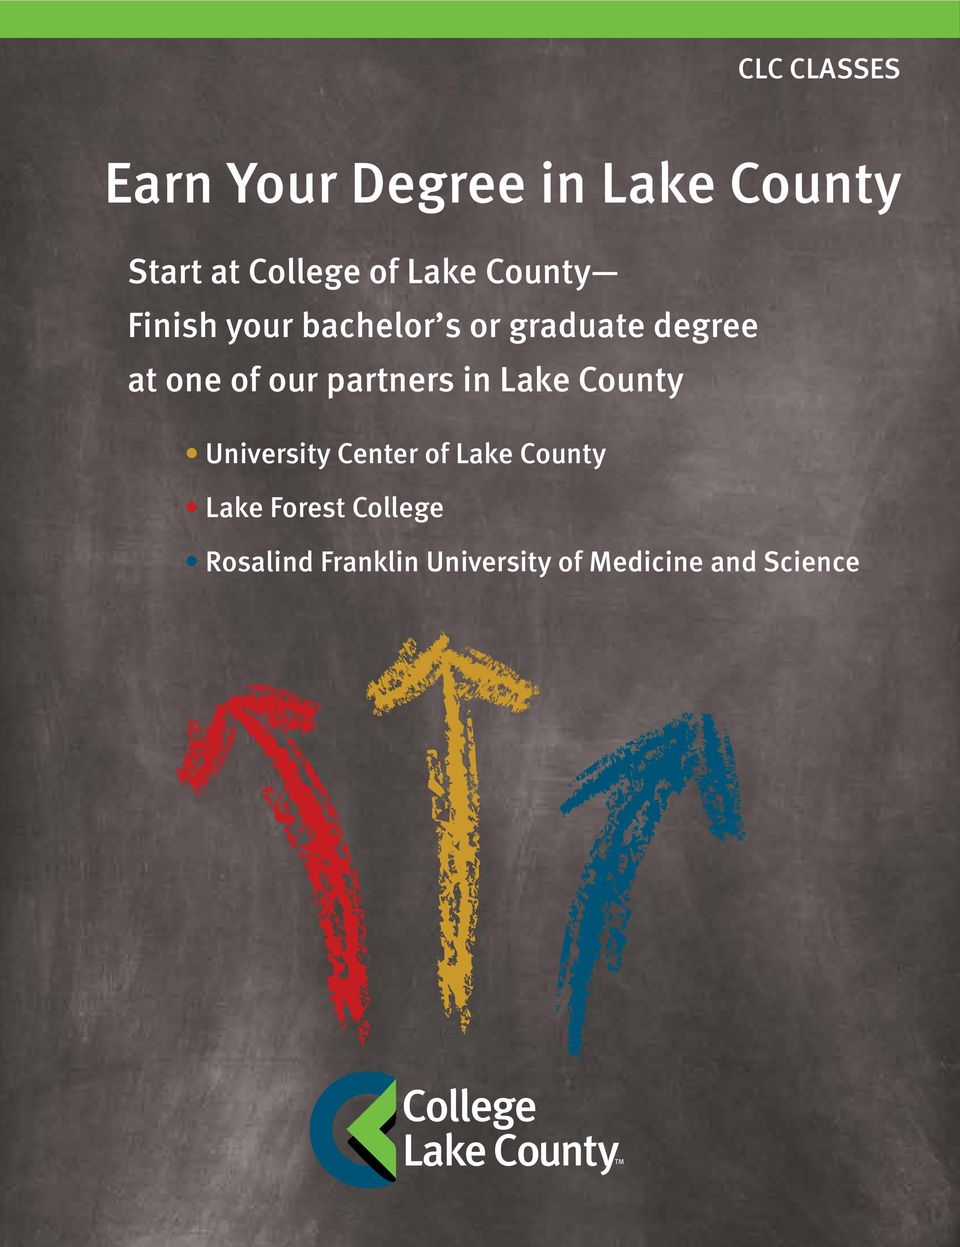 our partners in Lake County University Center of Lake County Lake